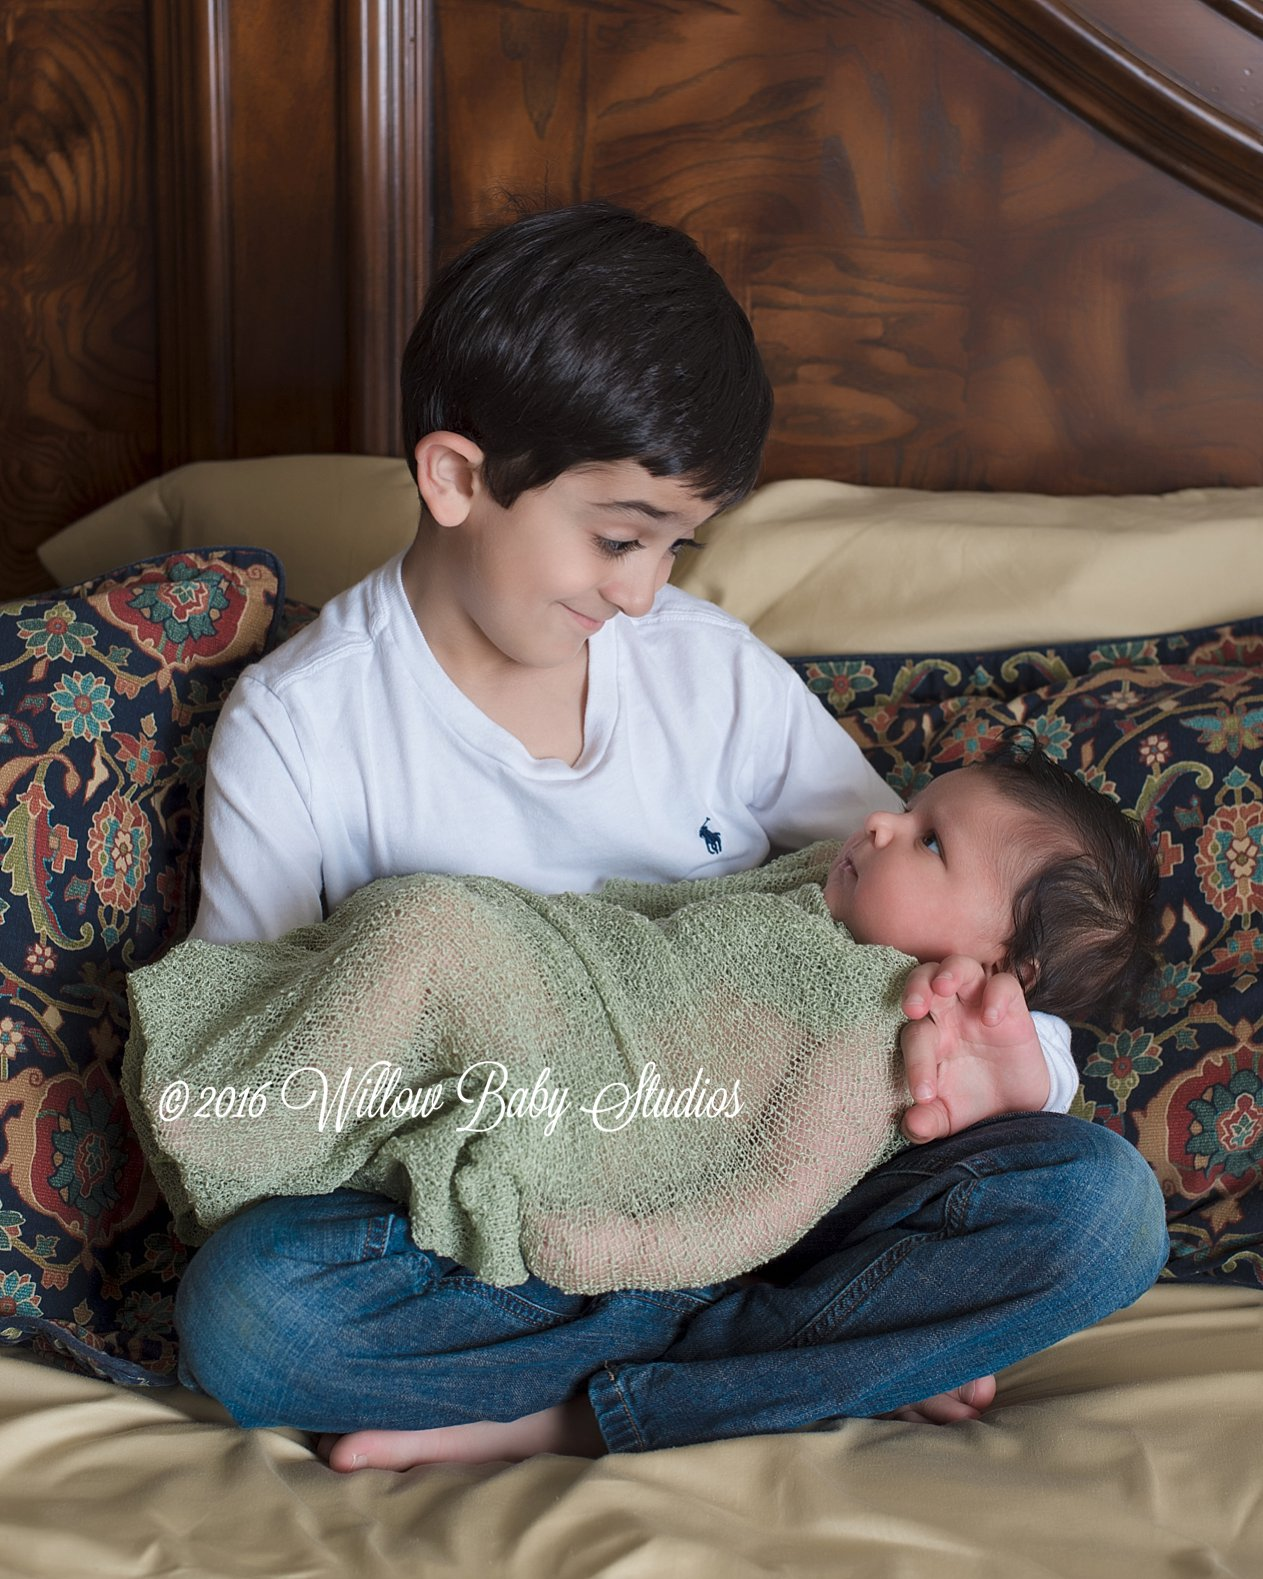 5 year old boy holding his new baby brother